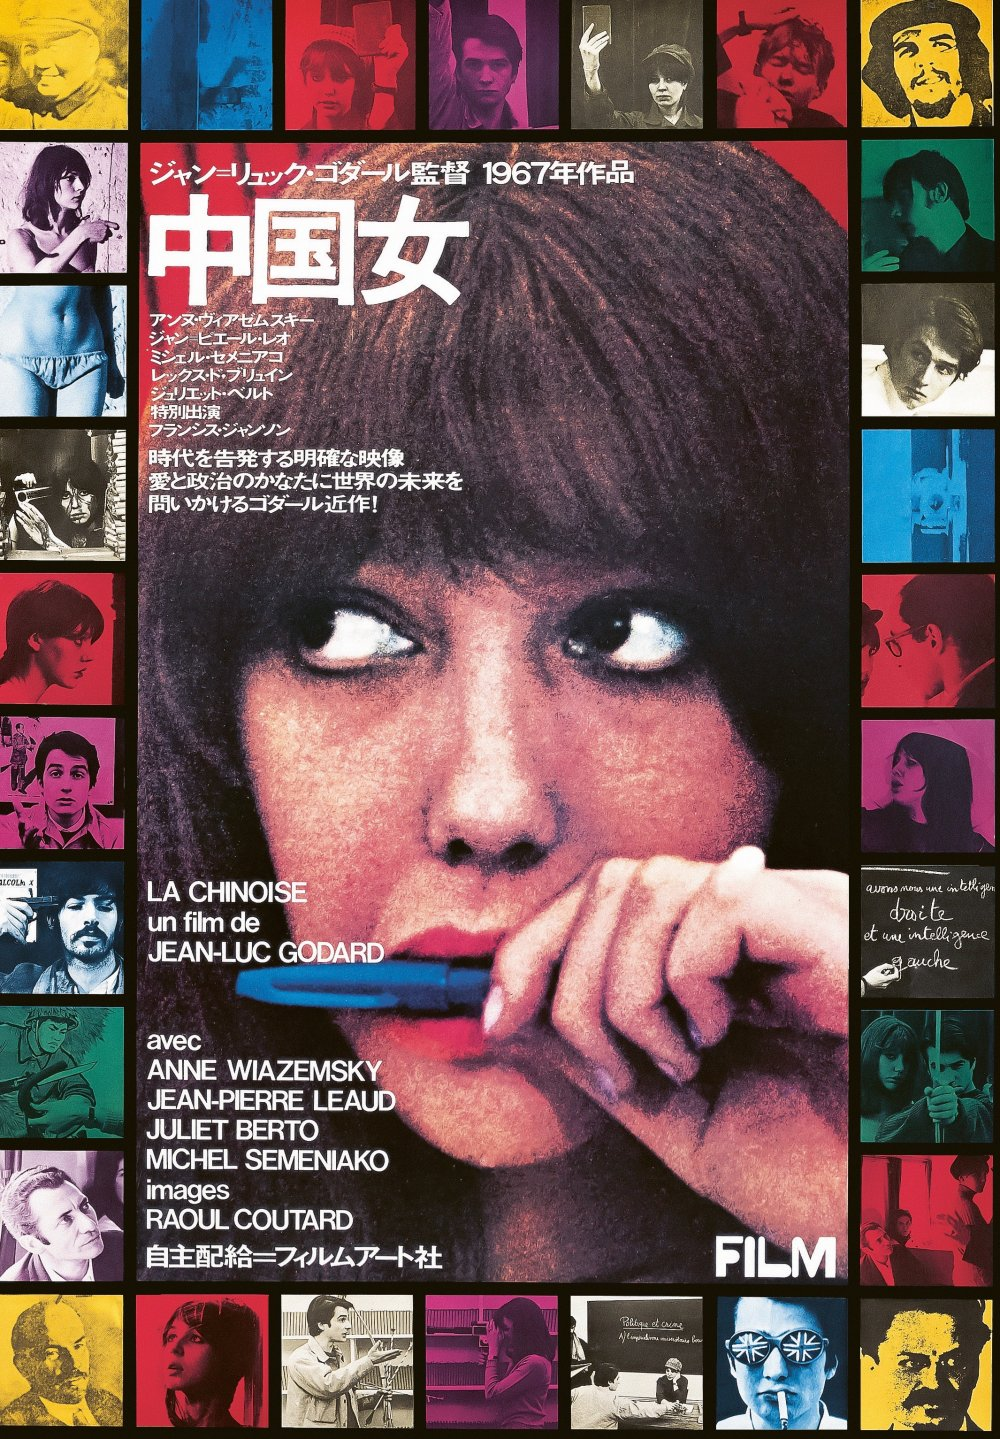 <strong>La Chinoise (1967) poster. Kiyoshi Awazu, Japan.</strong> On the poster for La Chinoise – Godard's searing political film about youthful Maoists in Paris – you'll see small tile images of Lenin and Che Guevara spliced alongside characters from the movie. With Anne Wiazemsky centre frame, the poster is bathed in beautiful gemstone colours, a glowing photomontage in the style of a stained-glass window. 'The first time I ever saw this poster I thought it was the Japanese Warhol,' says Nourmand, referring to Kiyoshi Awazu's design that, like Warhol, features cultural icons dipped in bright colours. Awazu – who was the only designer featured in the book that Nourmand met, right before he died – mainly worked on arthouse movies. And yet, he was quite well known in his native Japan, working also as a graphic designer.